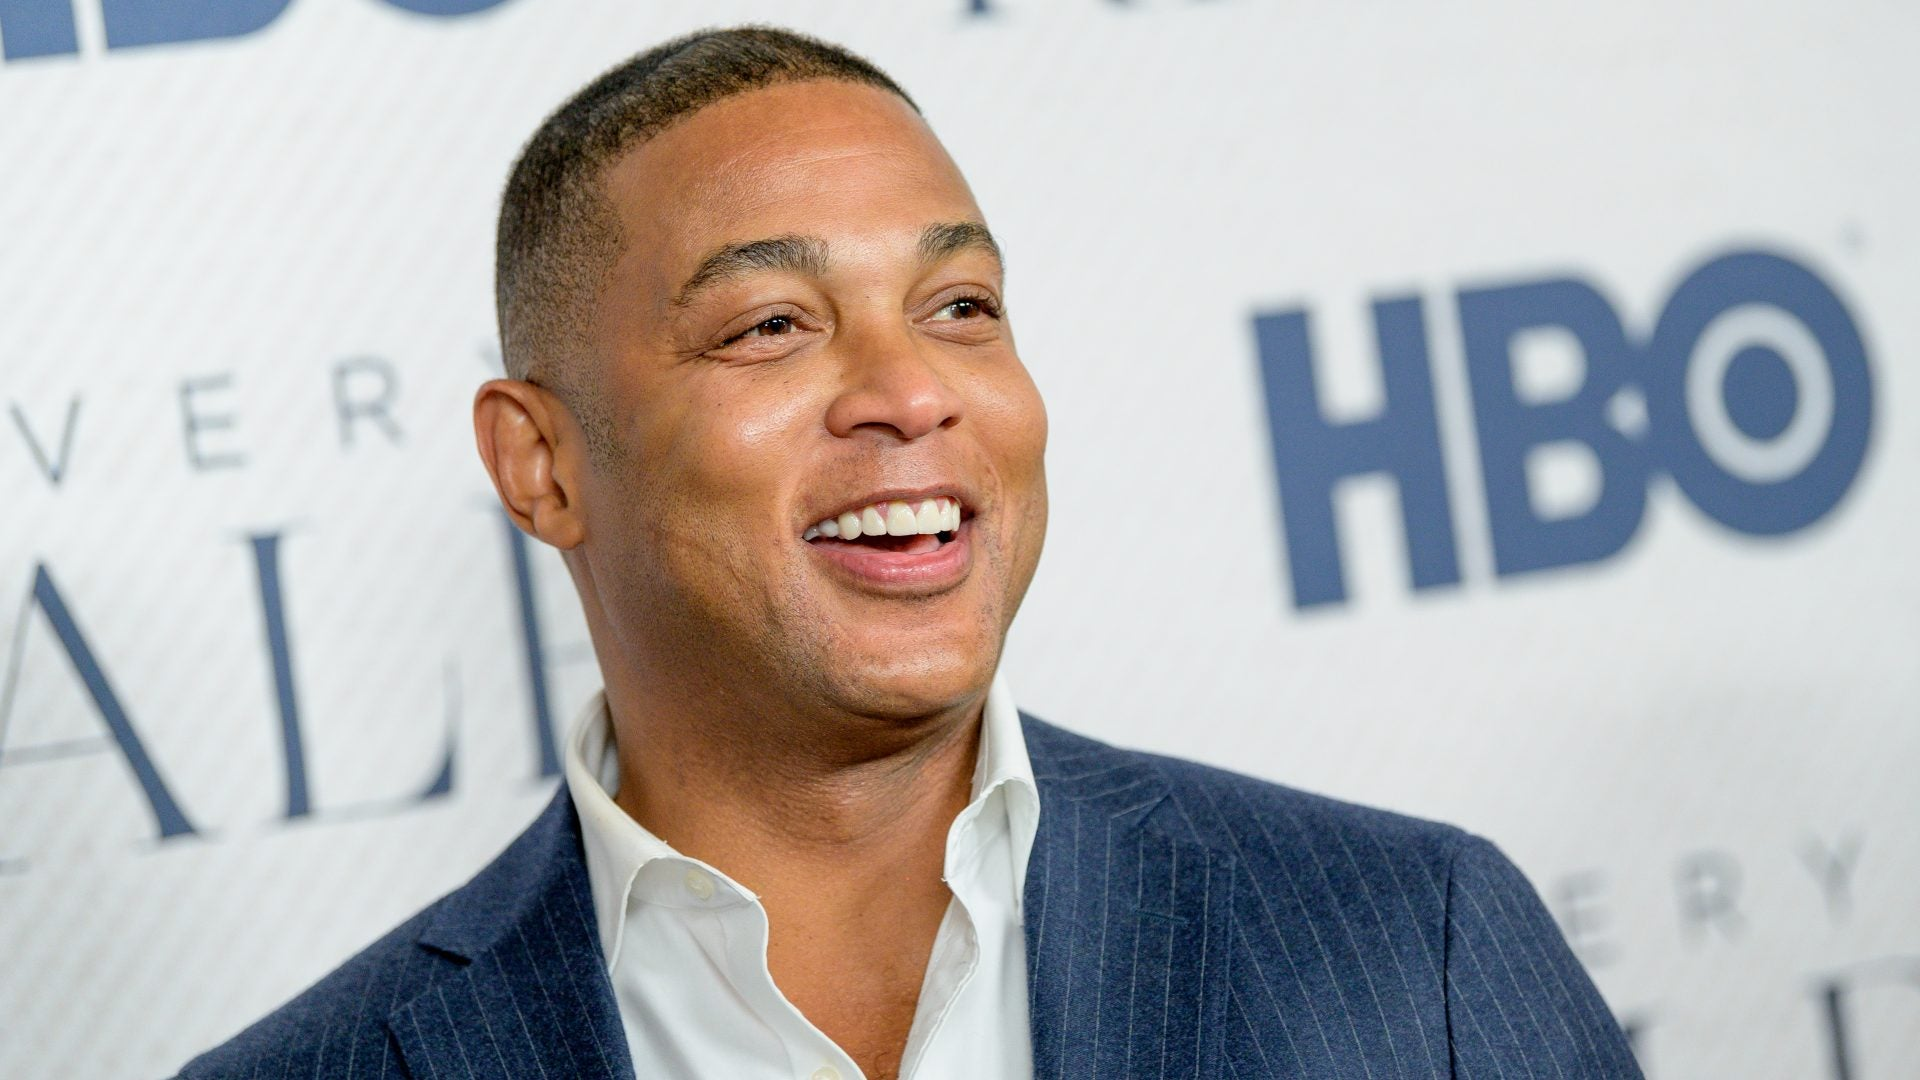 Don Lemon Rips Into Anti-Lockdown Protesters Who 'Just Want A Haircut'